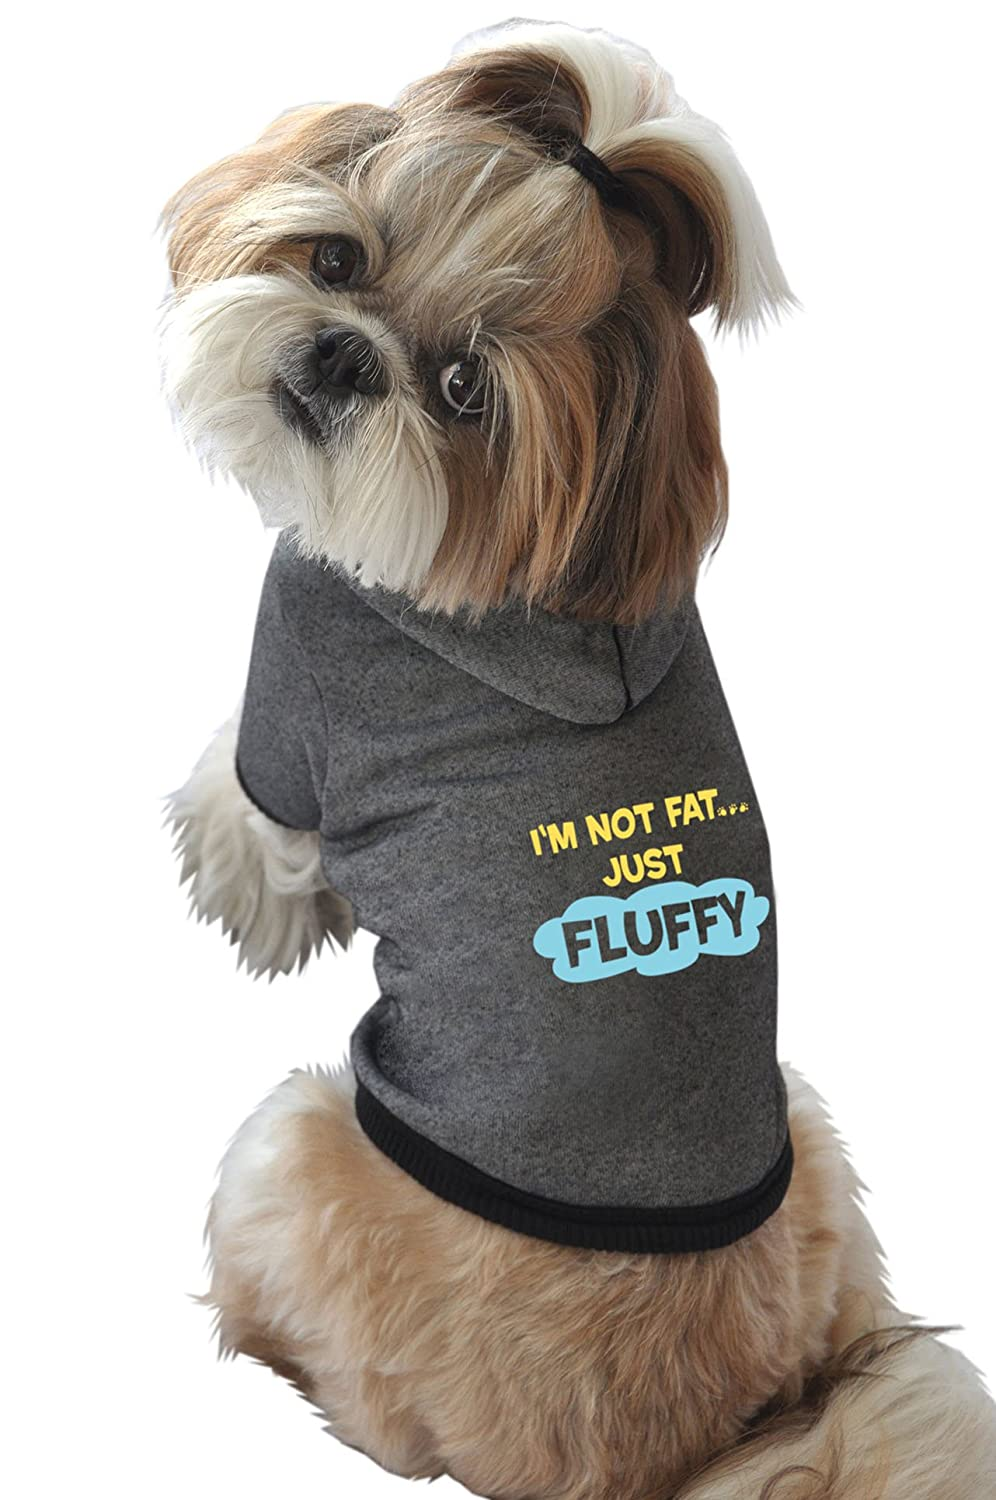 Ruff Ruff and Meow Dog Hoodie, Im Not Fat Just Fluffy, Black, Small